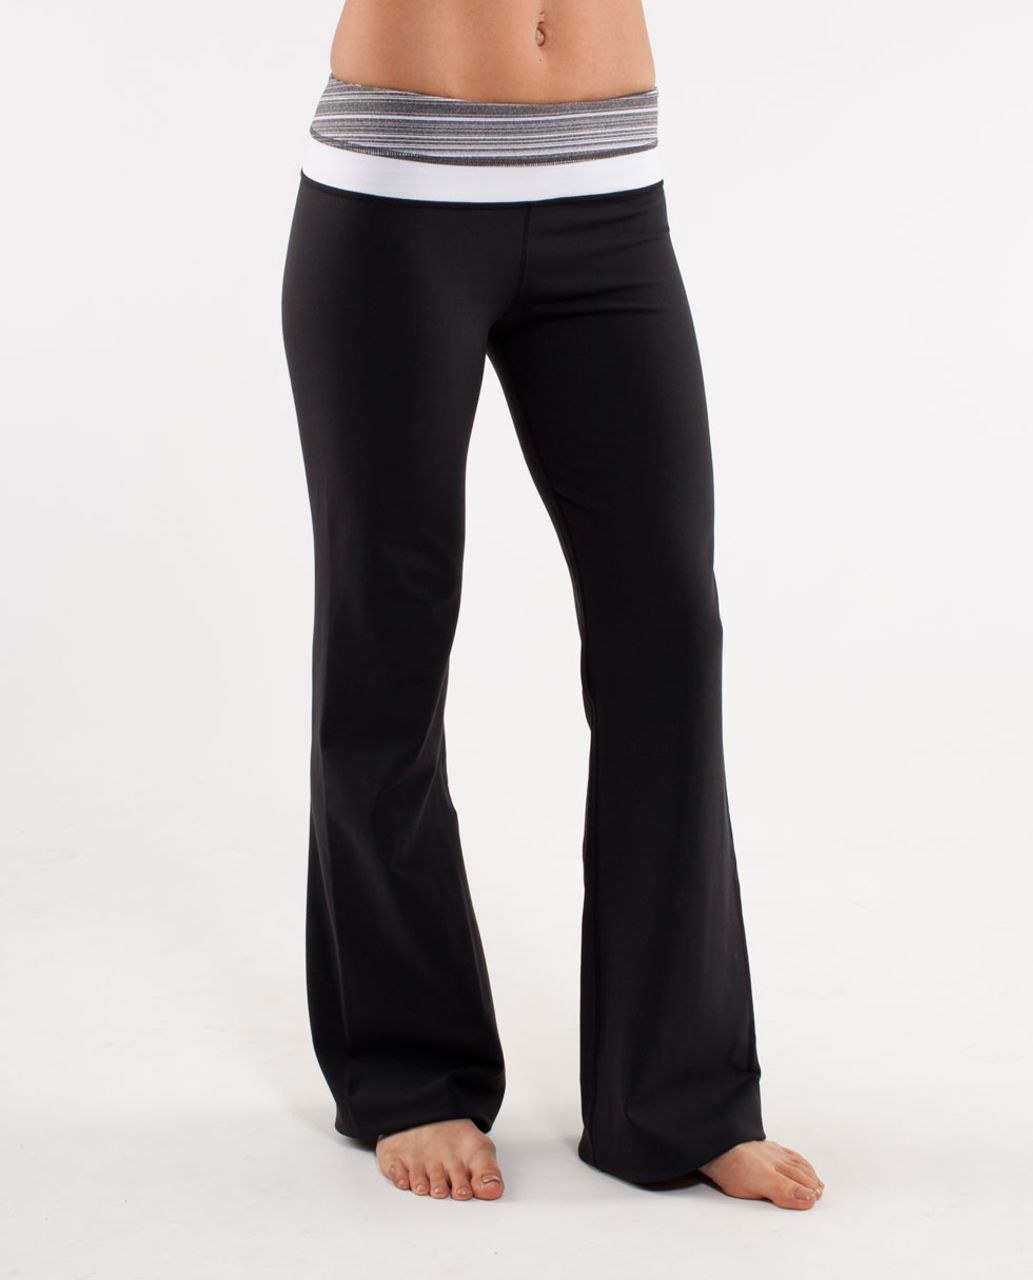 Lululemon Groove Pant (Tall) - Black /  Coal Strata Stripe /  White